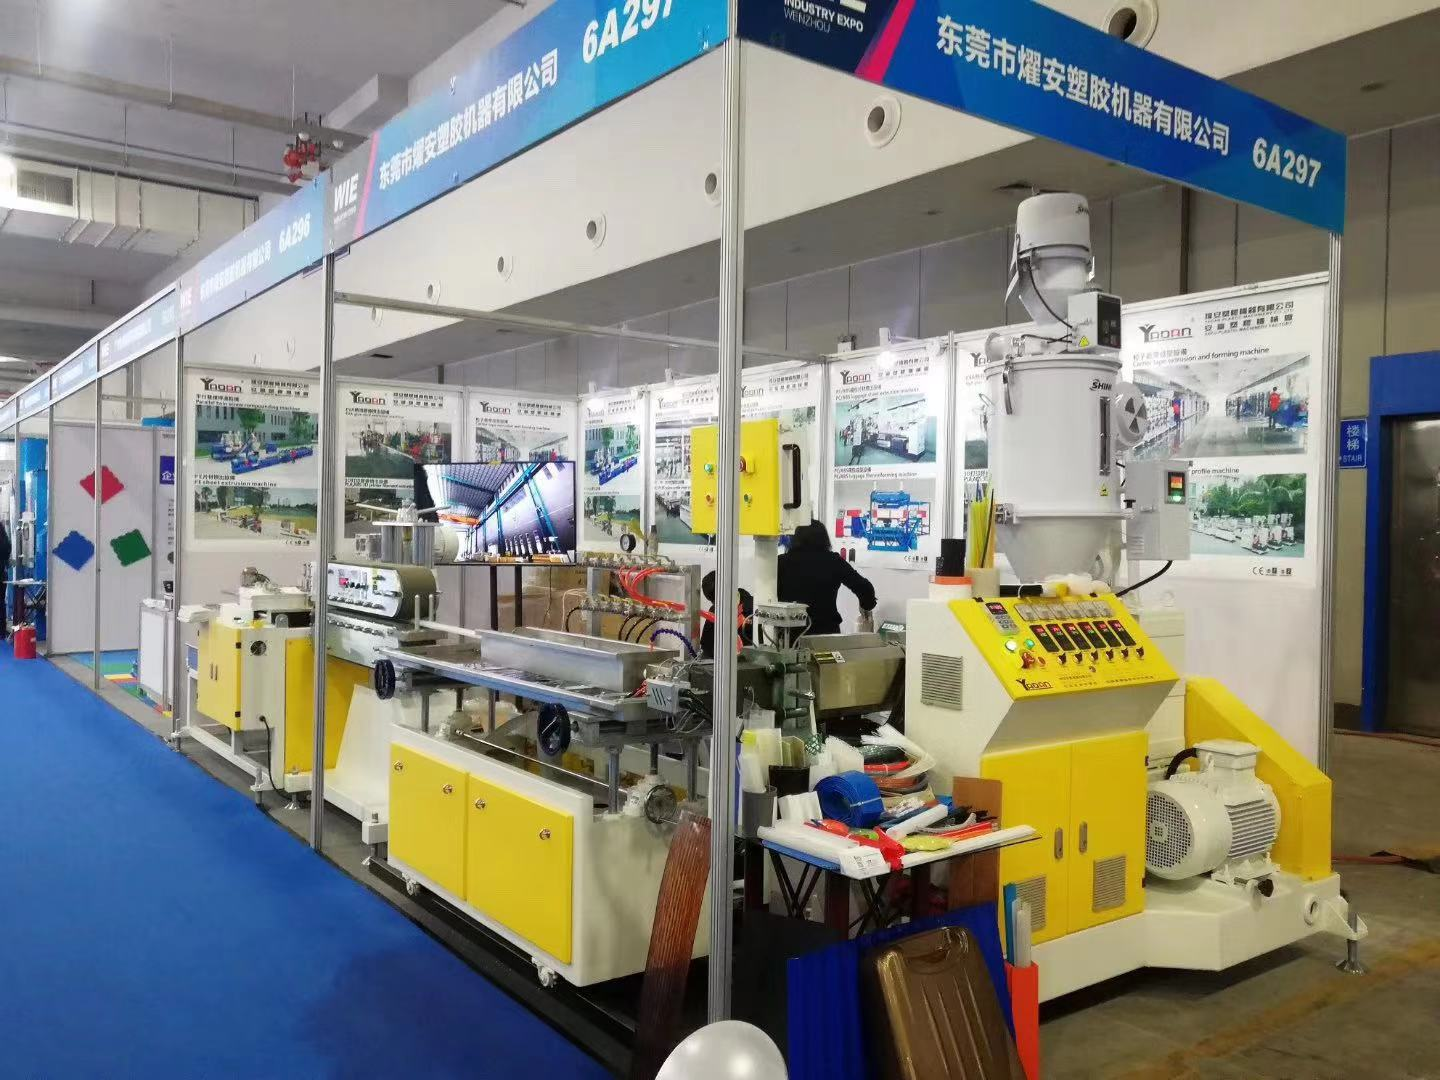 PC led tube light extrusion machine running in 2019 WENZHOU international industry fair